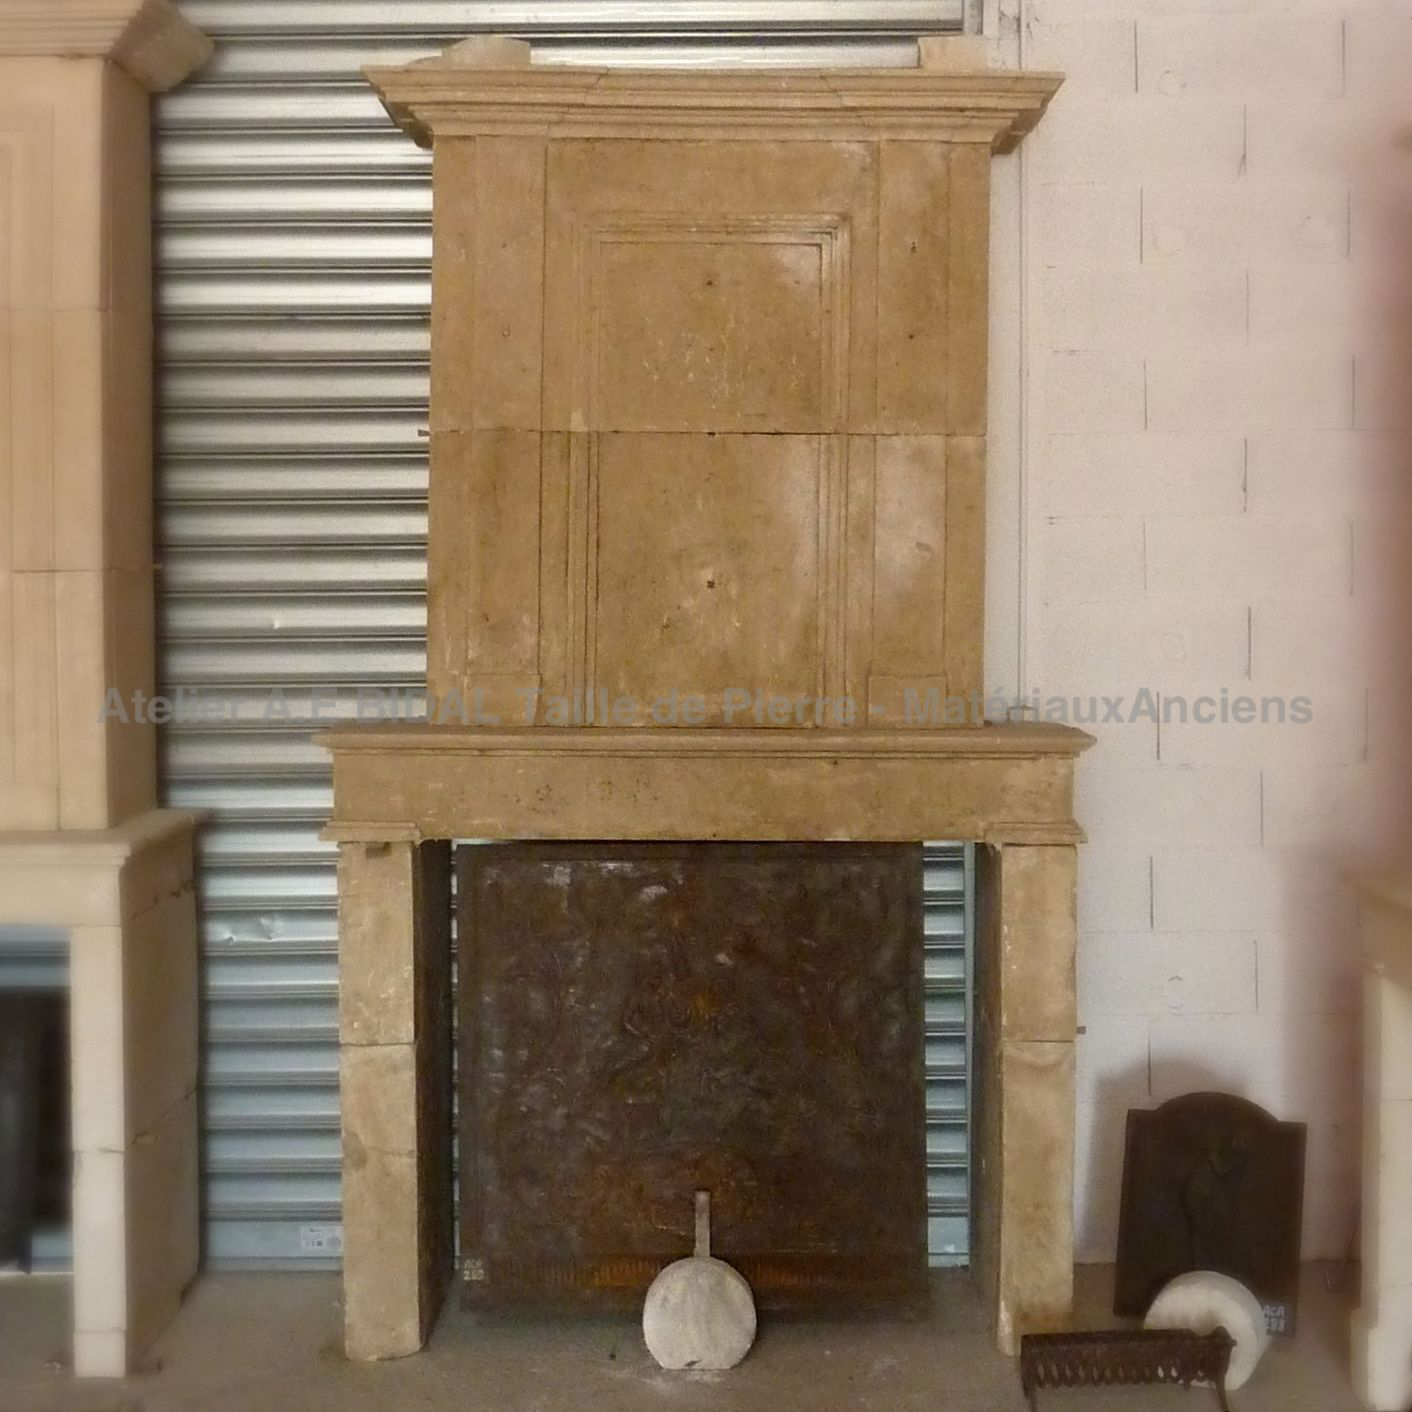 Antique fireplace in natural stone - a Louis XVI fireplace in stone of all beauty!